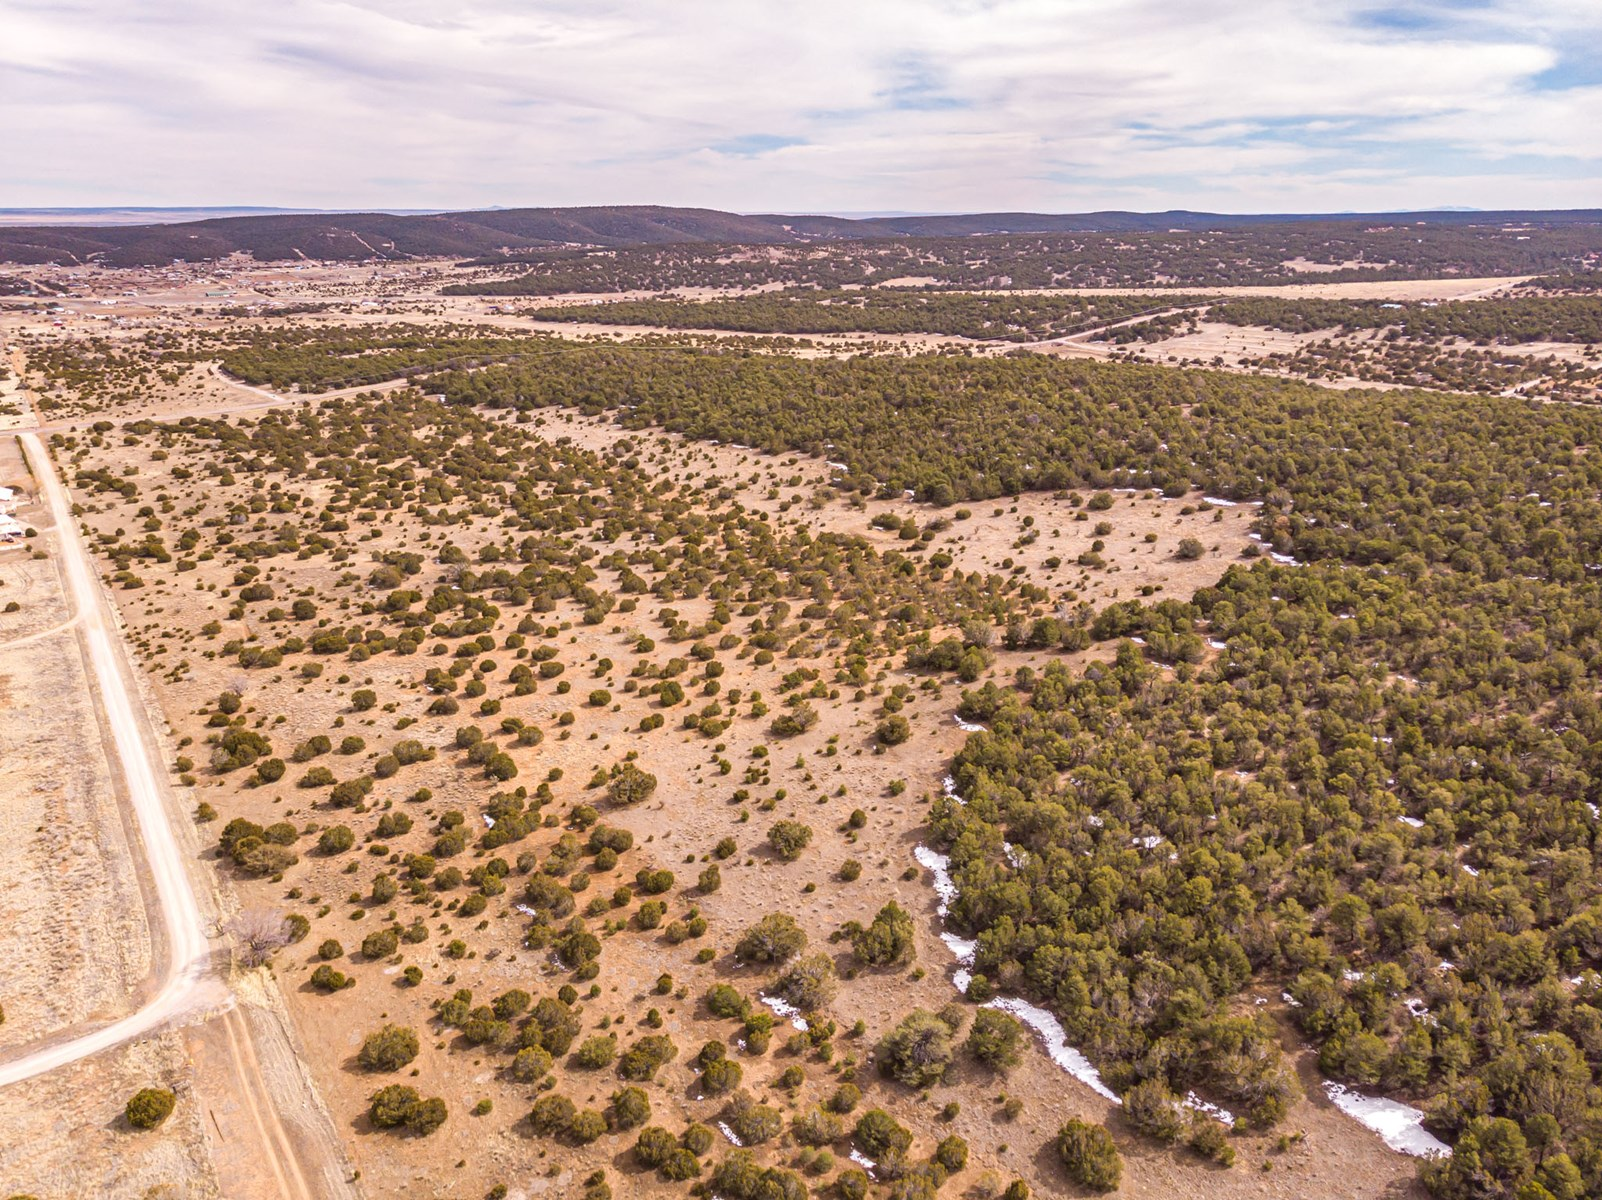 Edgewood, New Mexico 192.17 Acres Wooded with Metal Shop